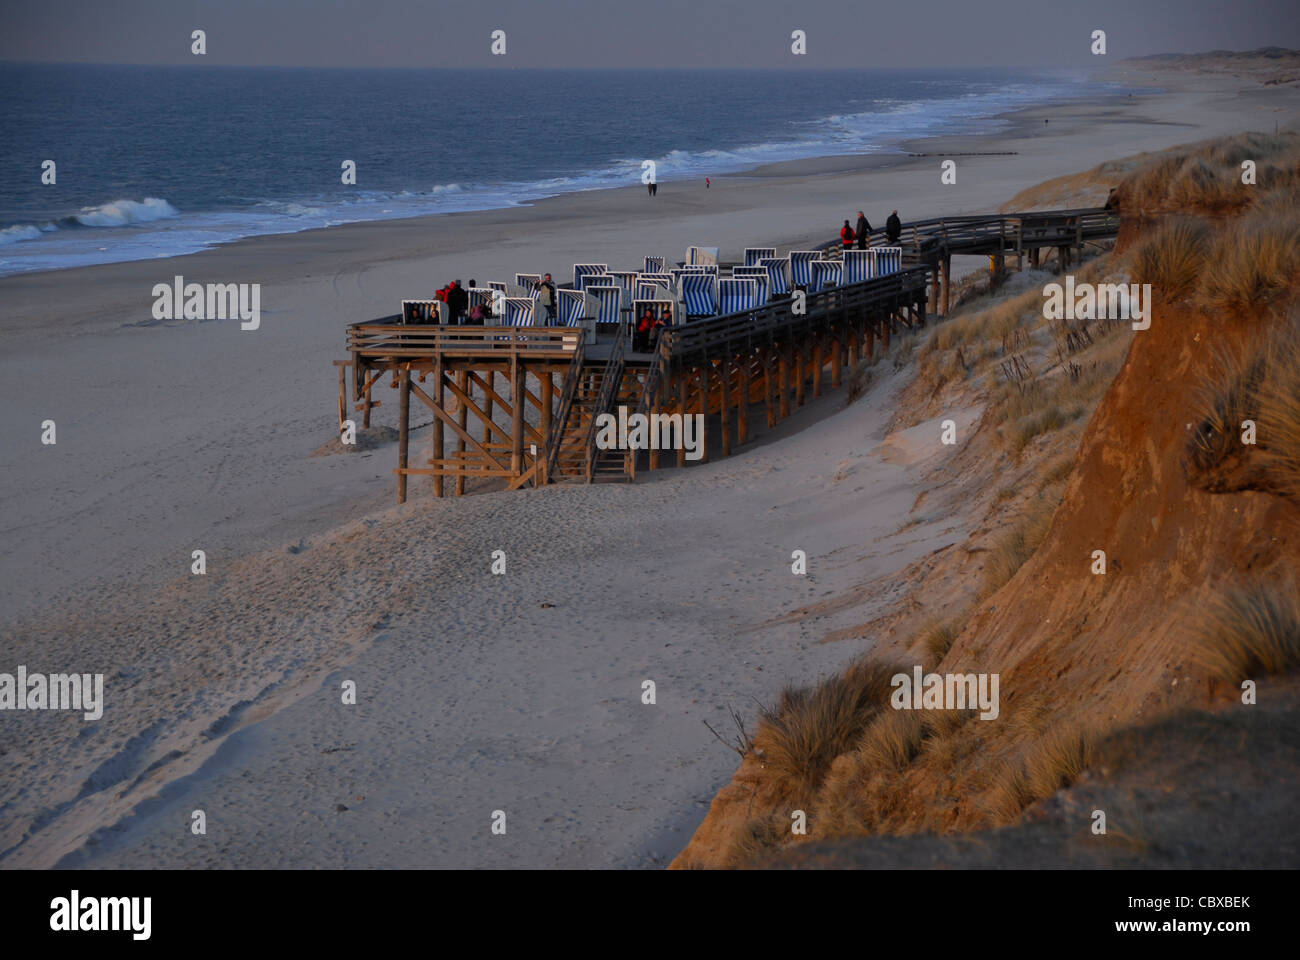 At the beach of the North Frisian island of Sylt, viewing piers are erected close to the cliffs to carry the beach Stock Photo